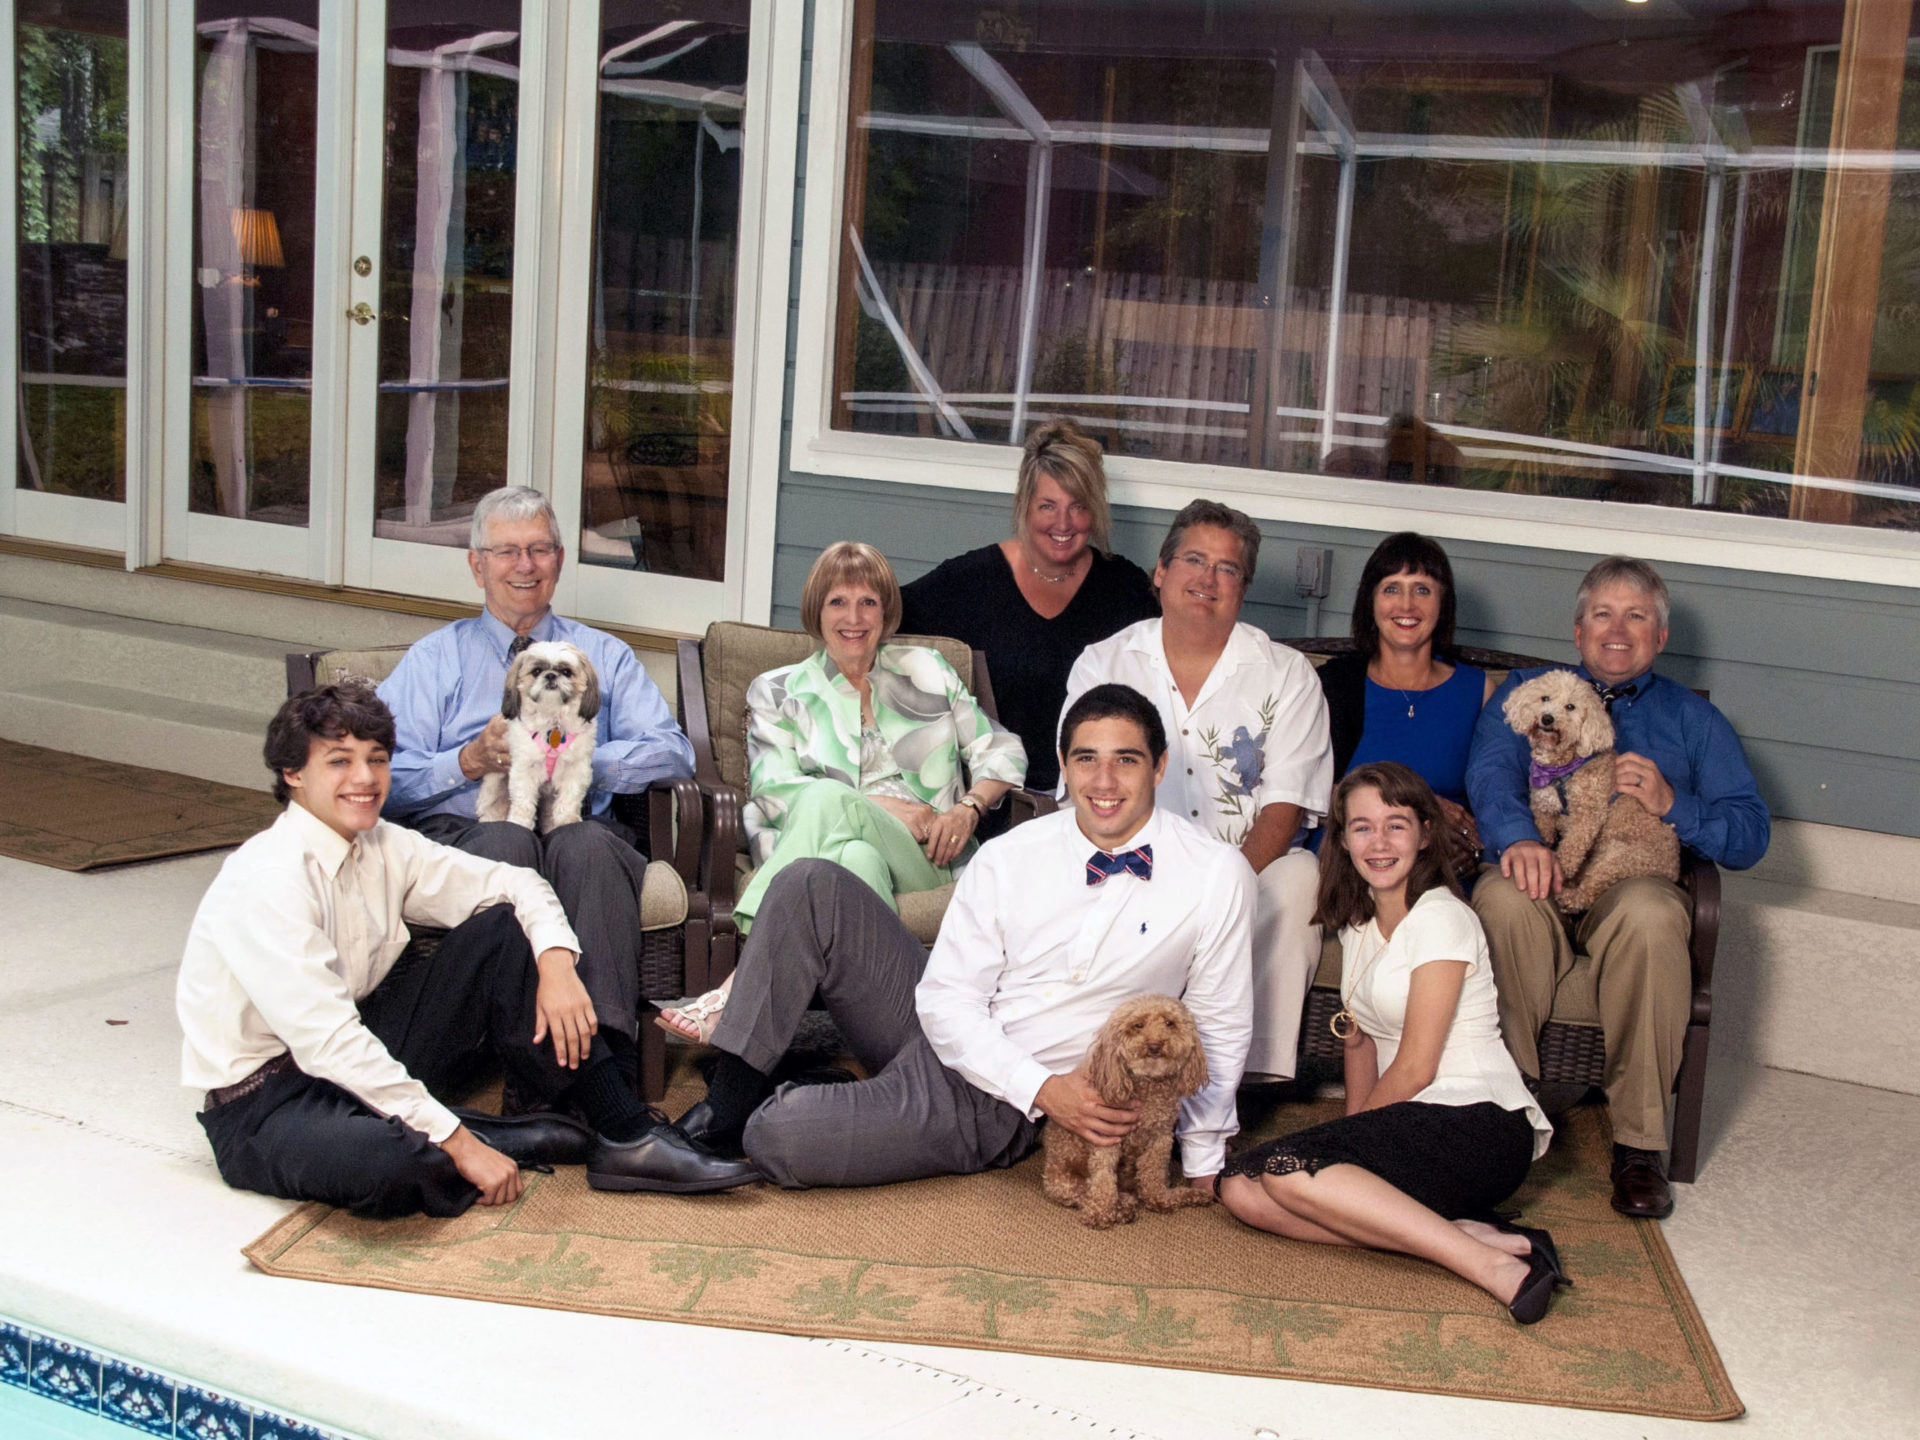 Large family portrait by pool with brothers sisters aunts uncles and grandparents